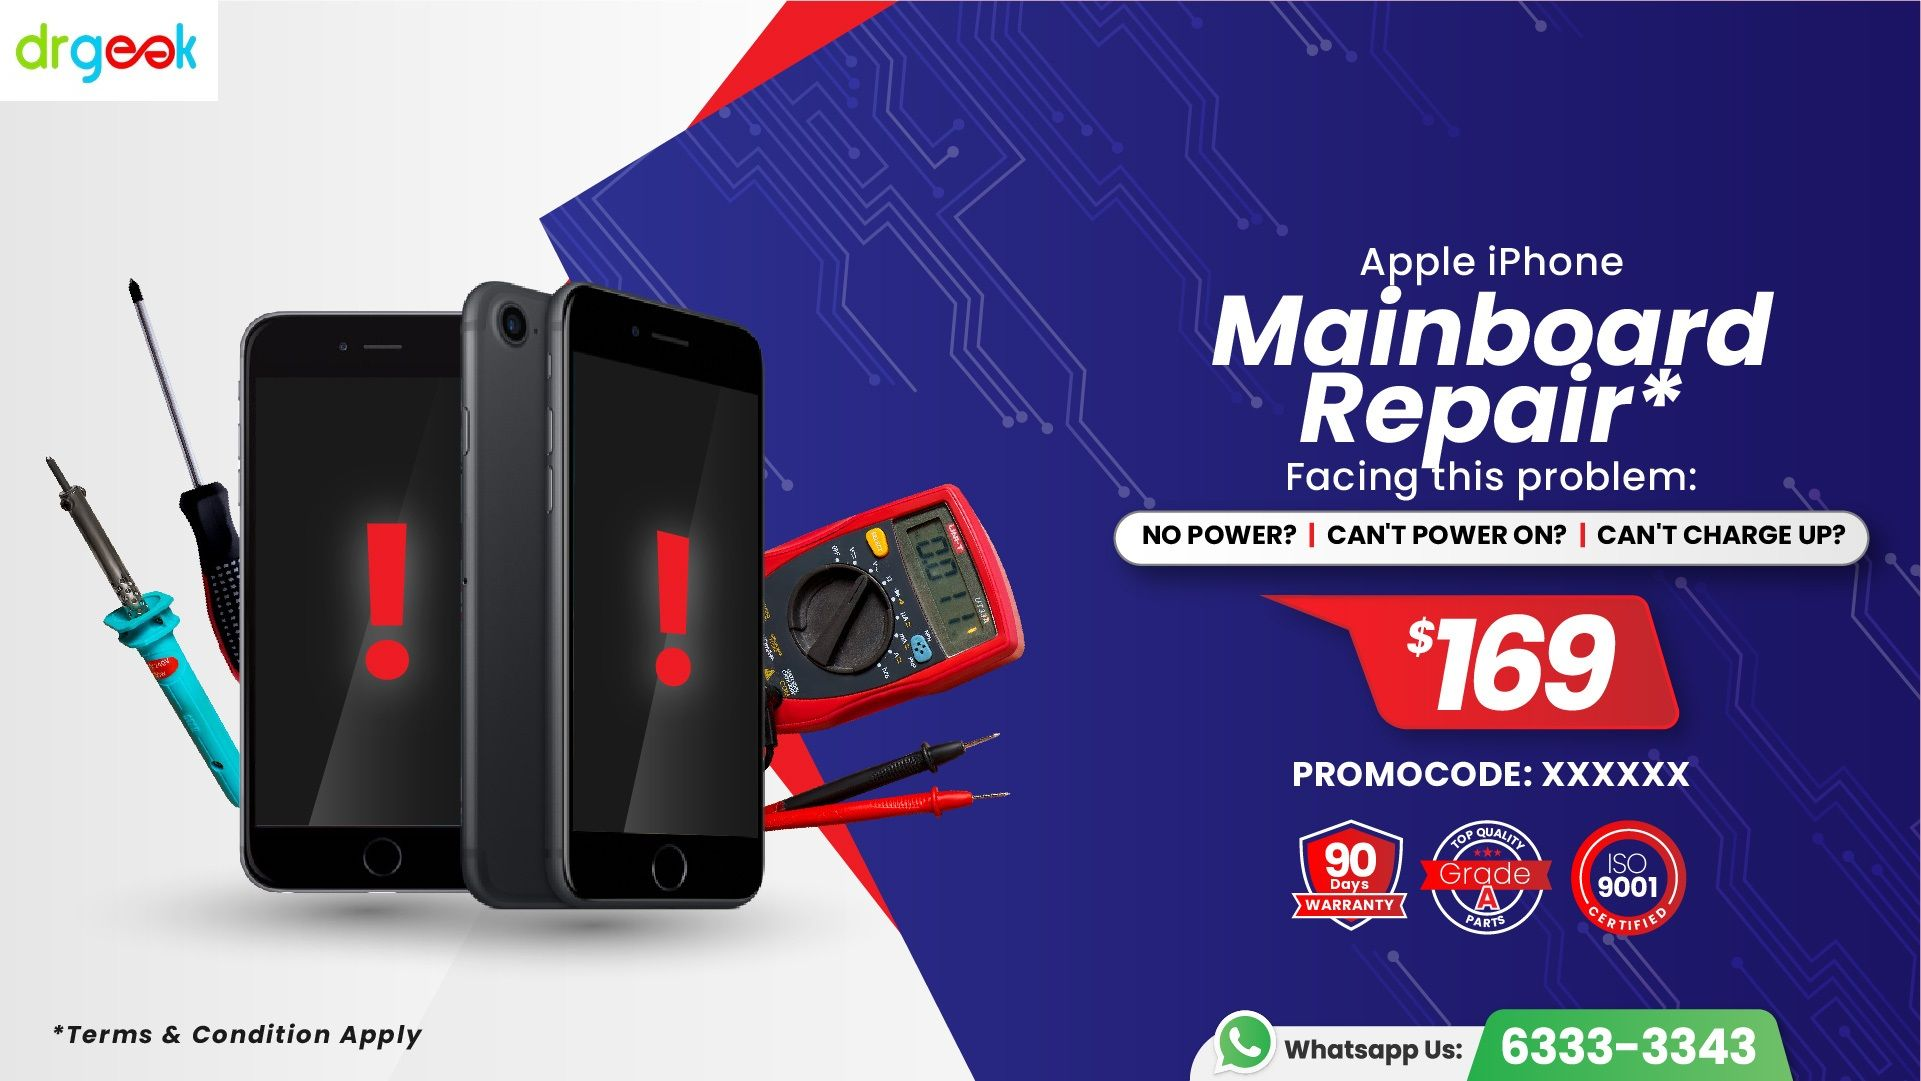 Fast and affodable iPhone repair service in Singapore